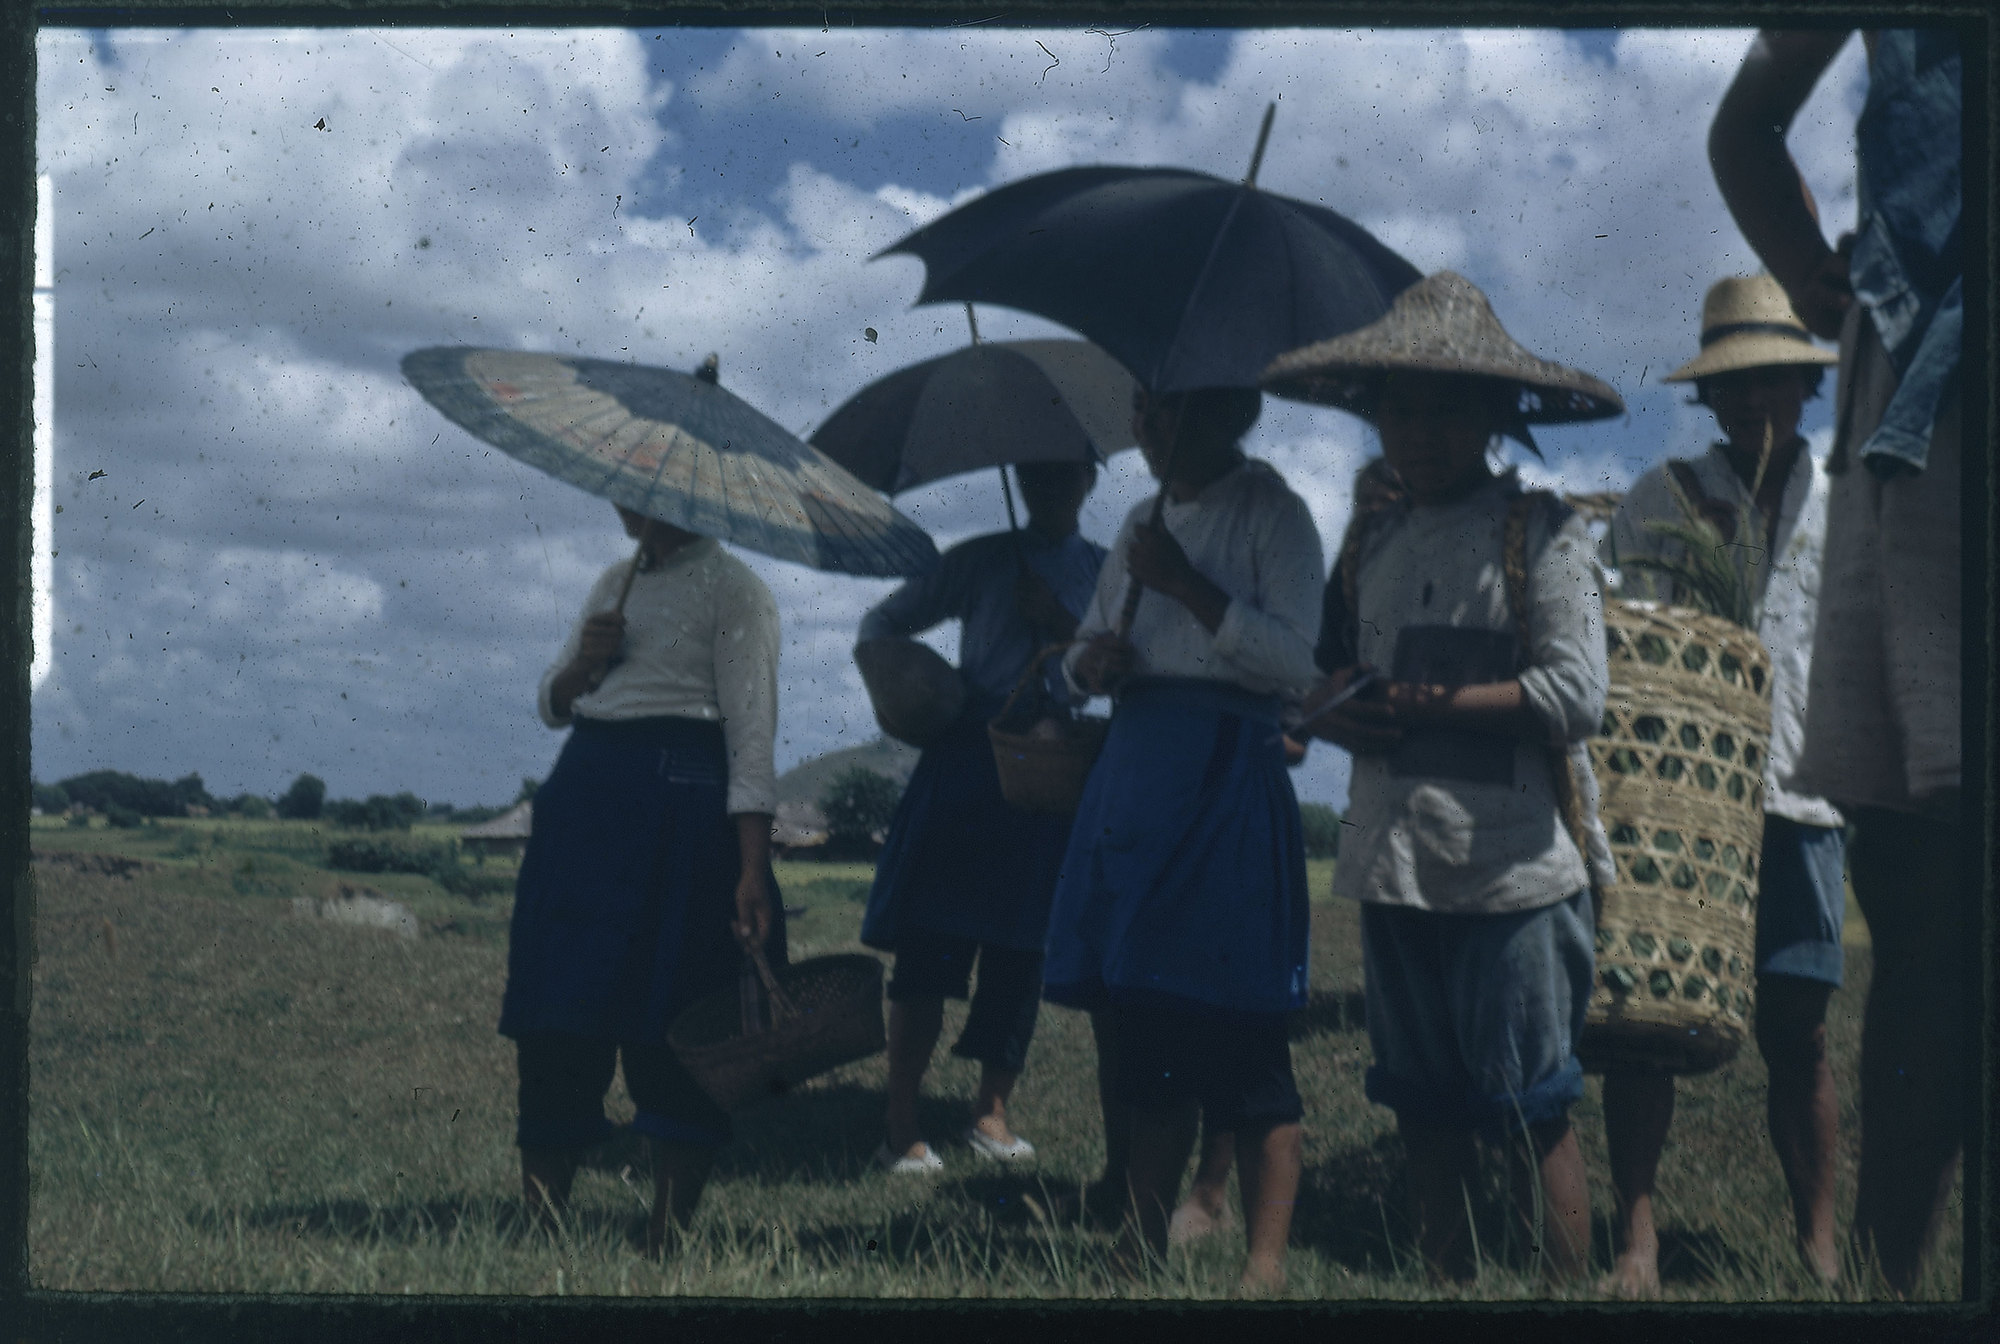 Hiller 09-099 : Standing people with umbrellas and hats